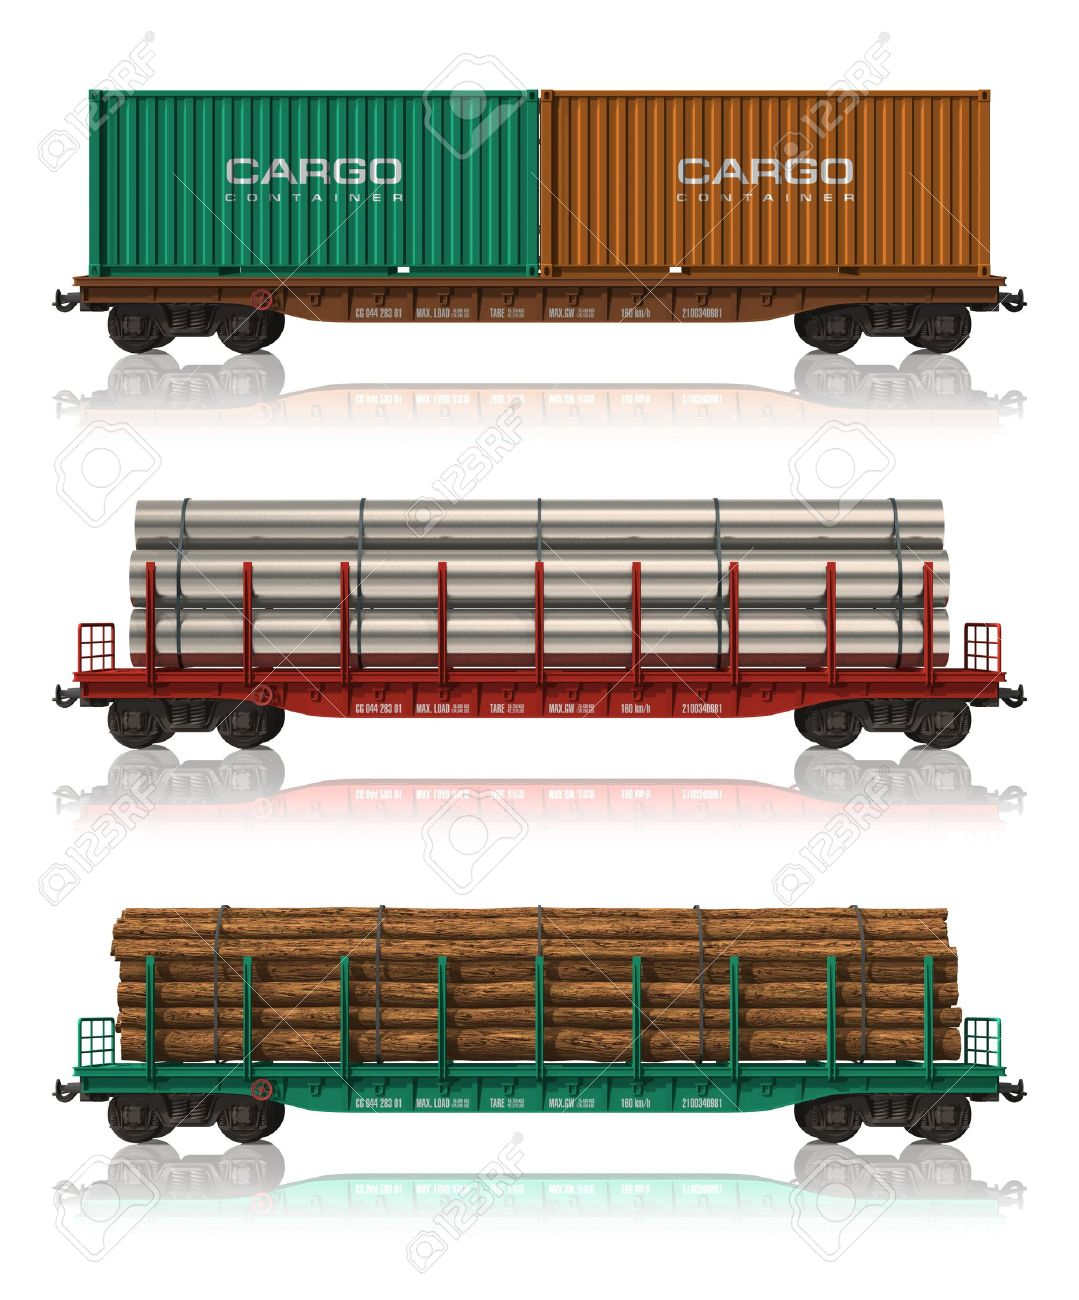 Freight train car clipart.